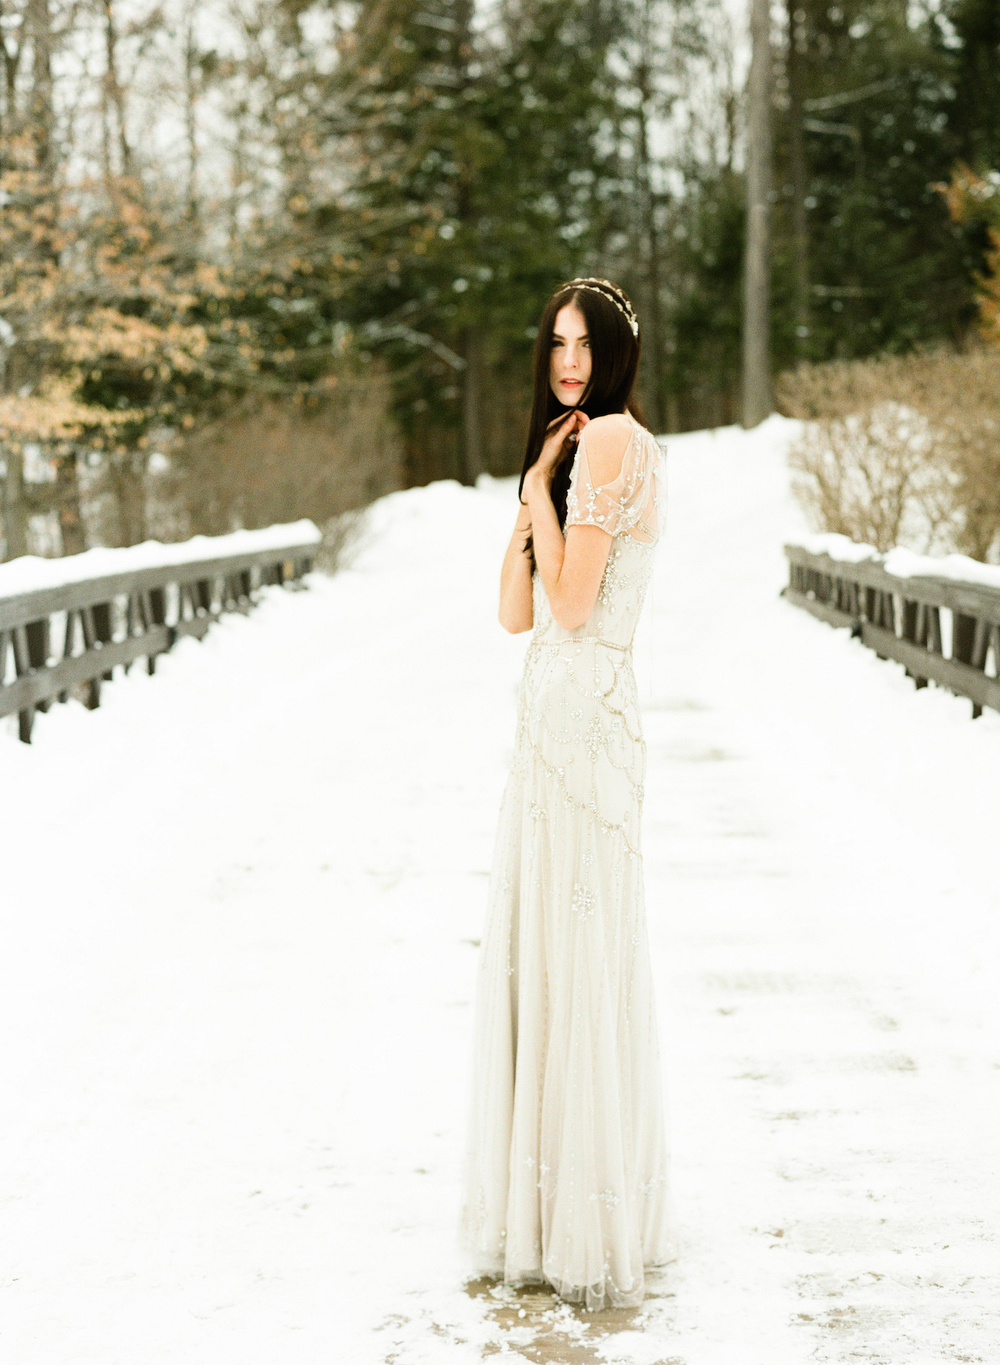 Winter Editorial-JennyPackham-LindsayMaddenPhotography-31 copy.jpg